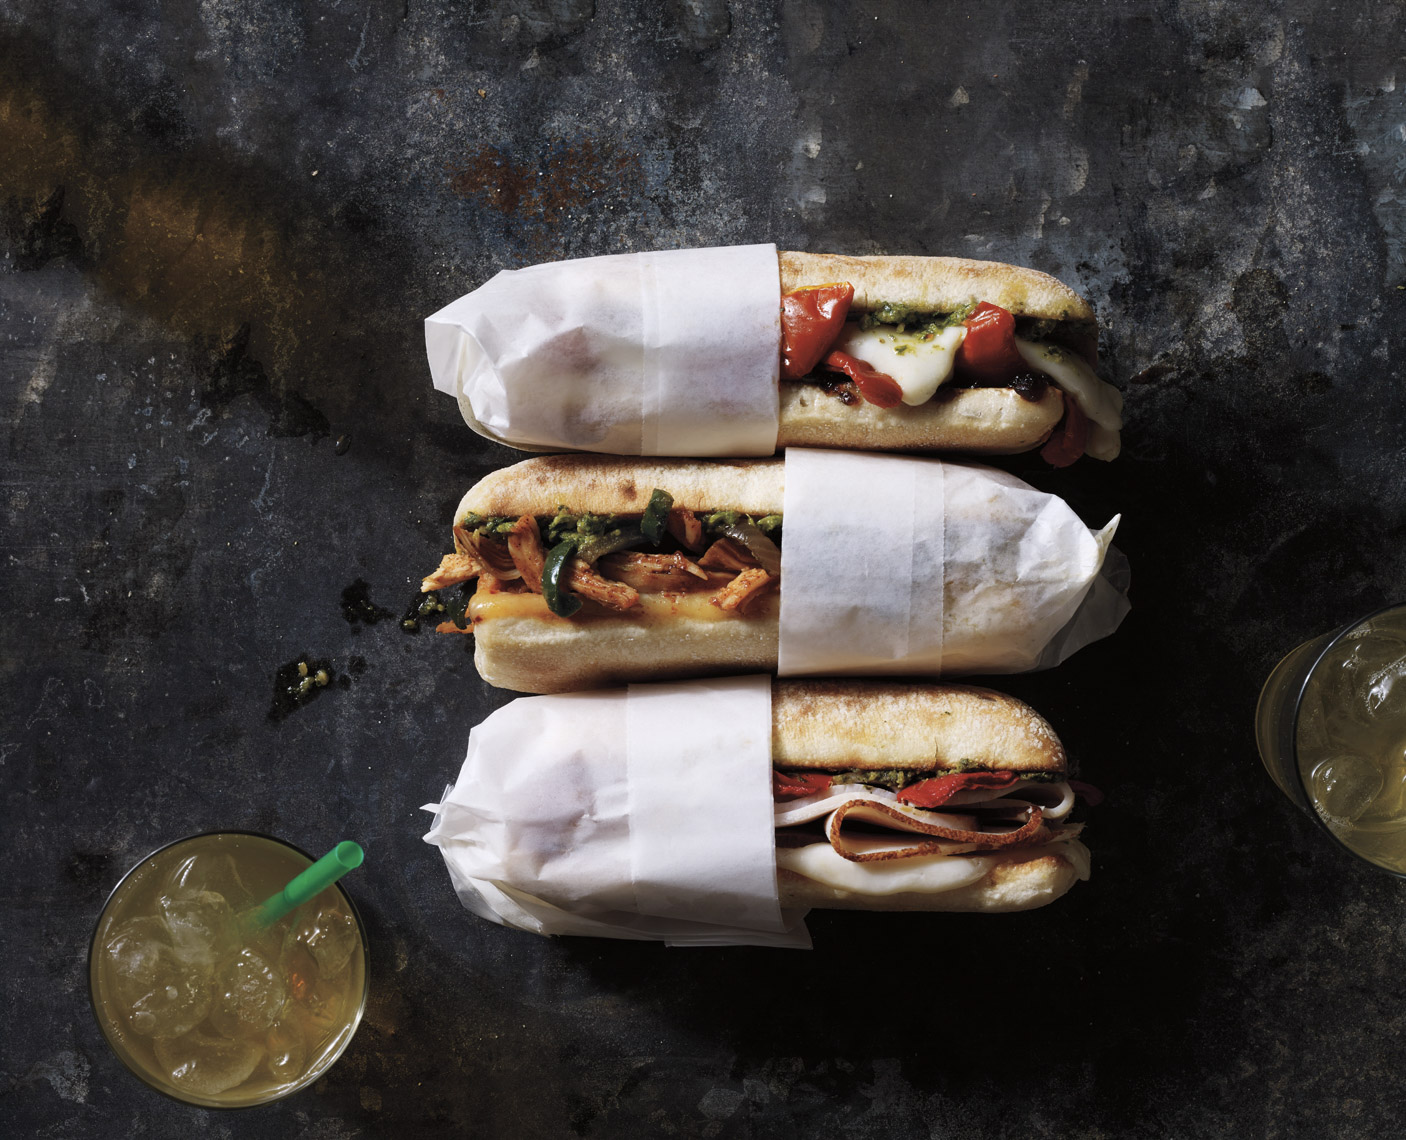 food stylist in Chicago - Starbucks hot sandwiches, photographed by Dan Goldberg photograper